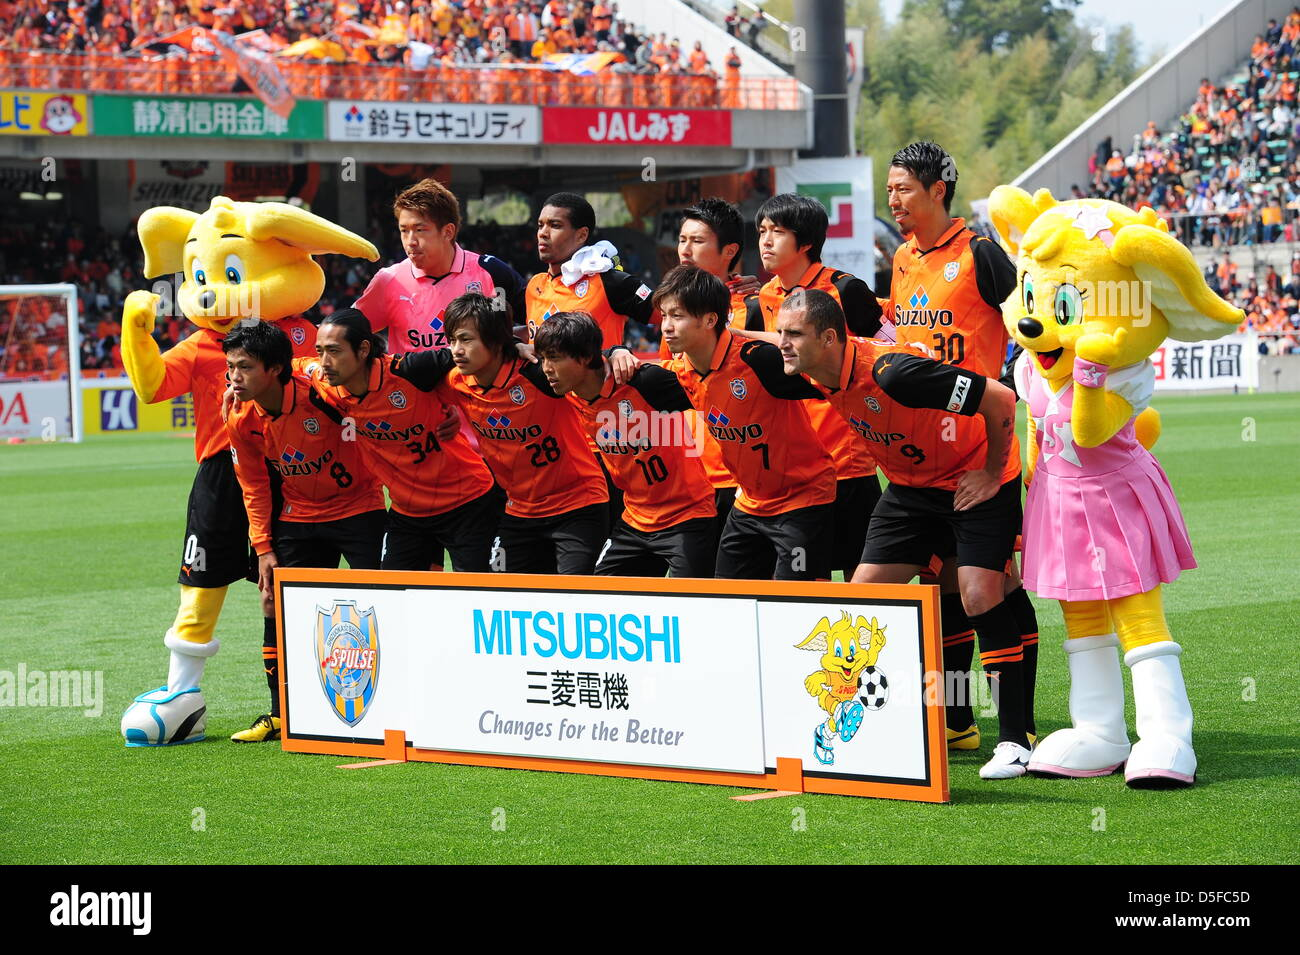 Shimizu S-Pulse team group line-up, MARCH 30, 2013